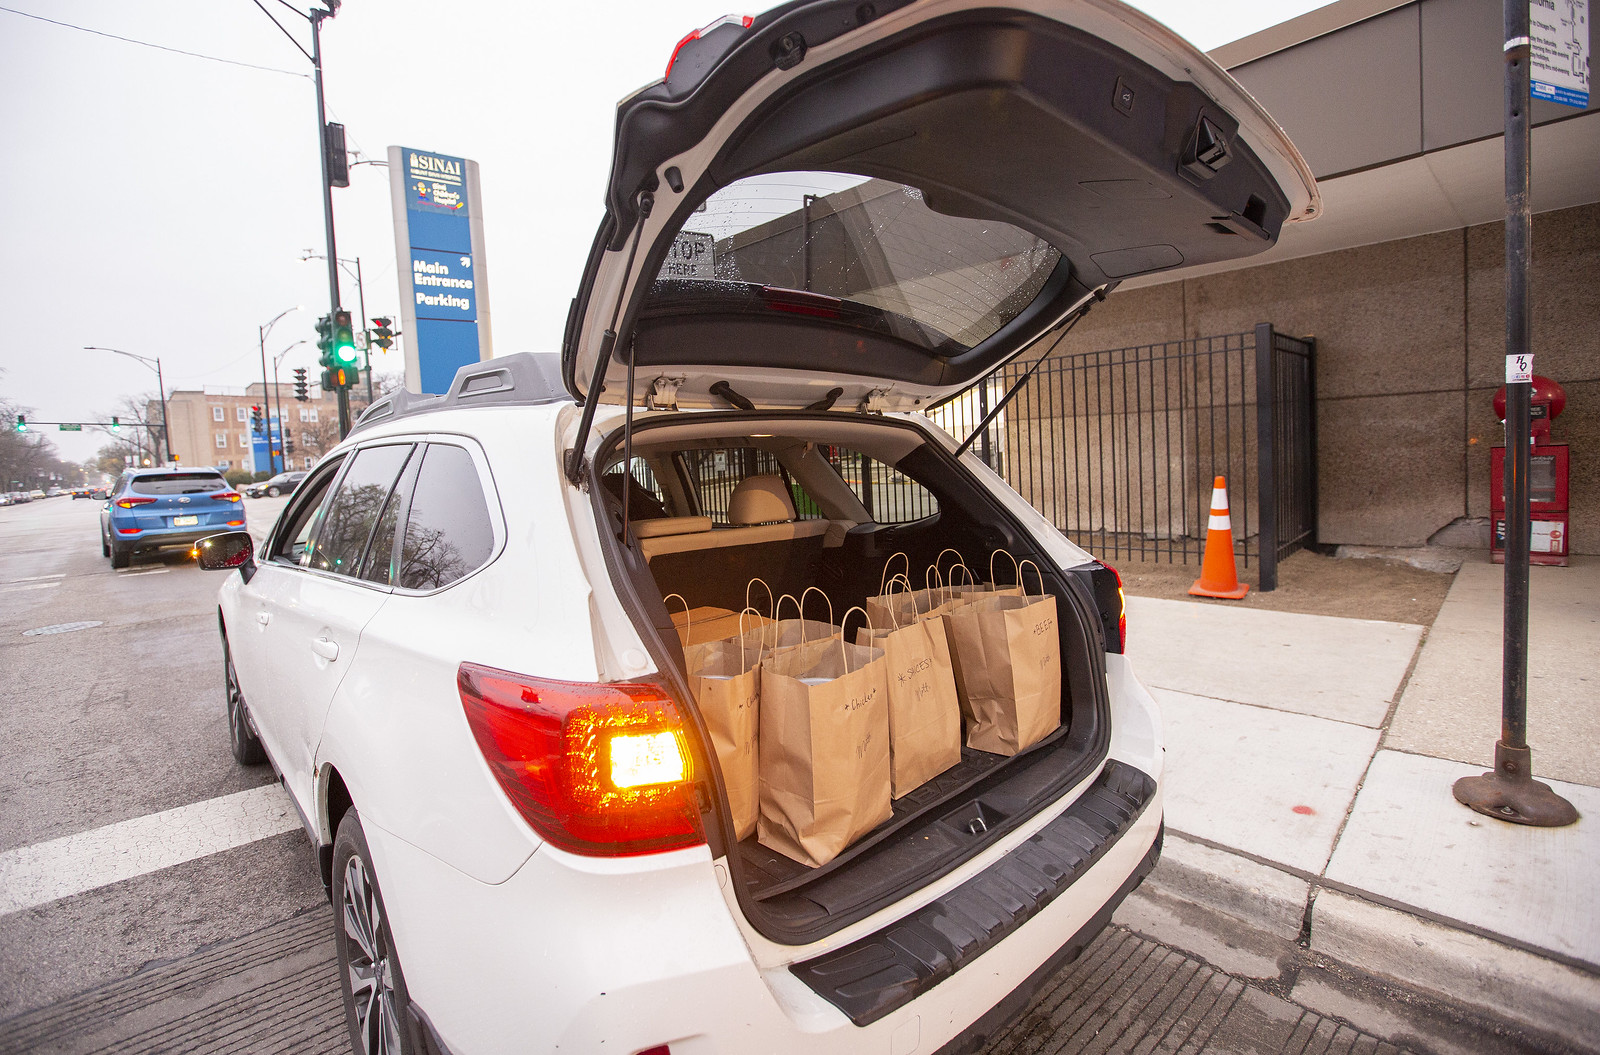 An SUV trunk open with a vehicle full of brown bags.